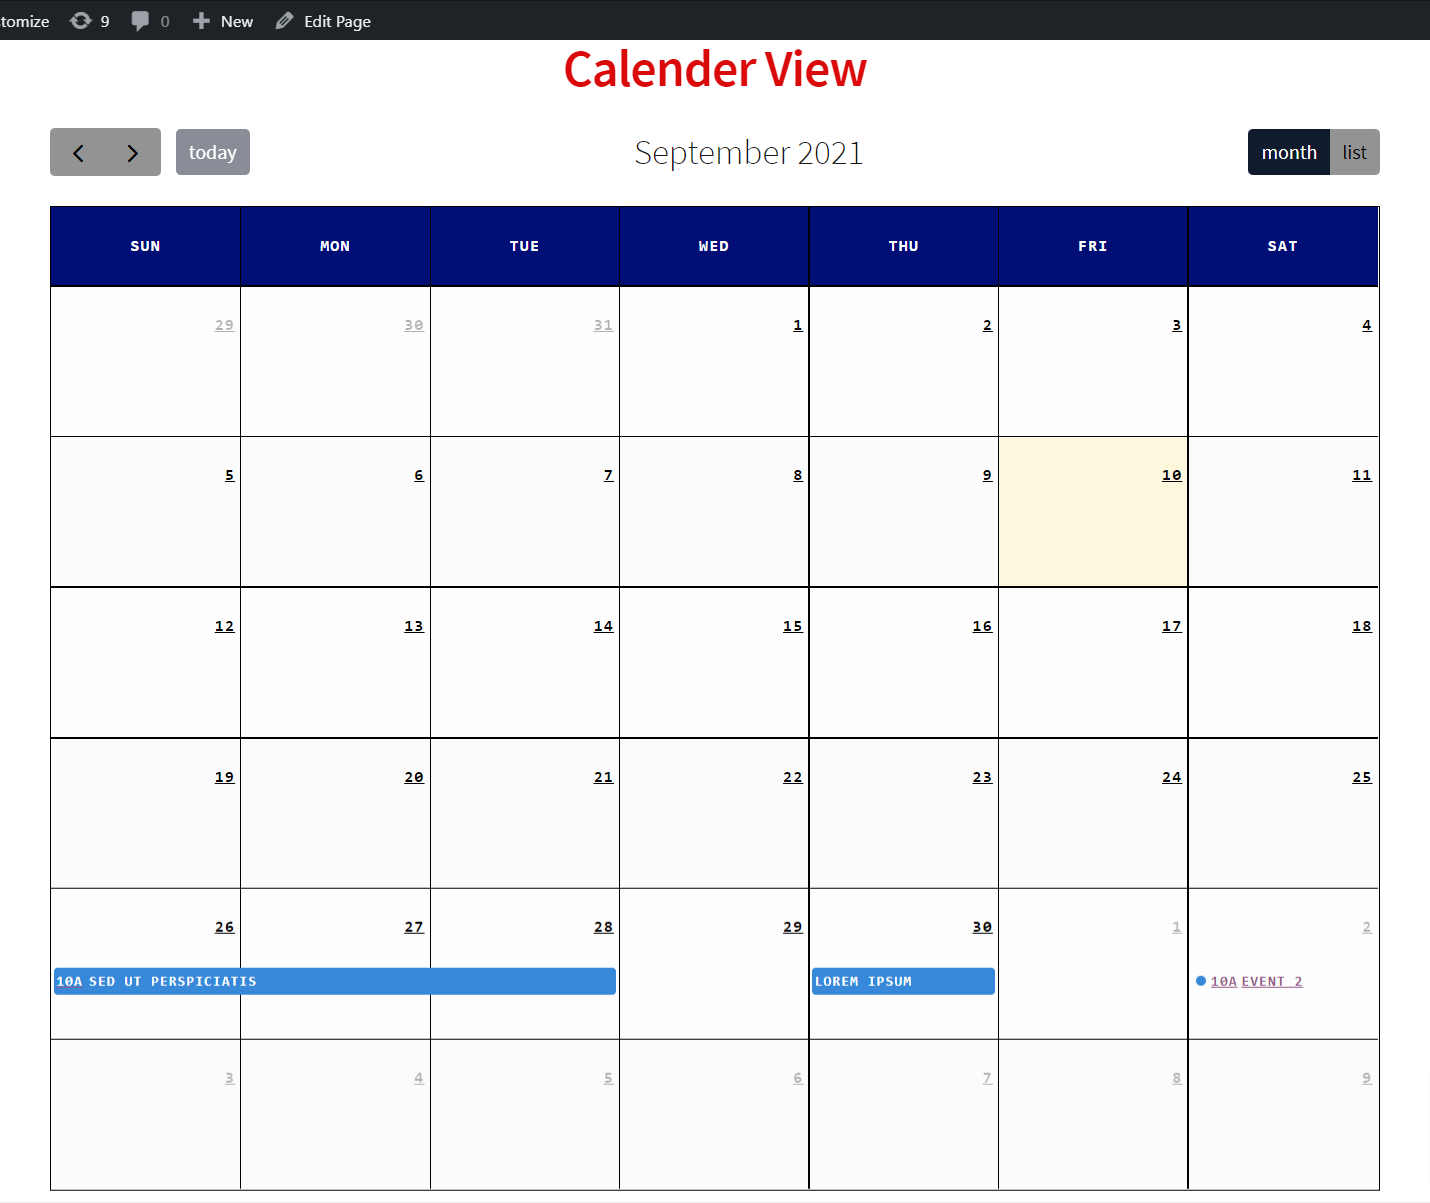 Calender View